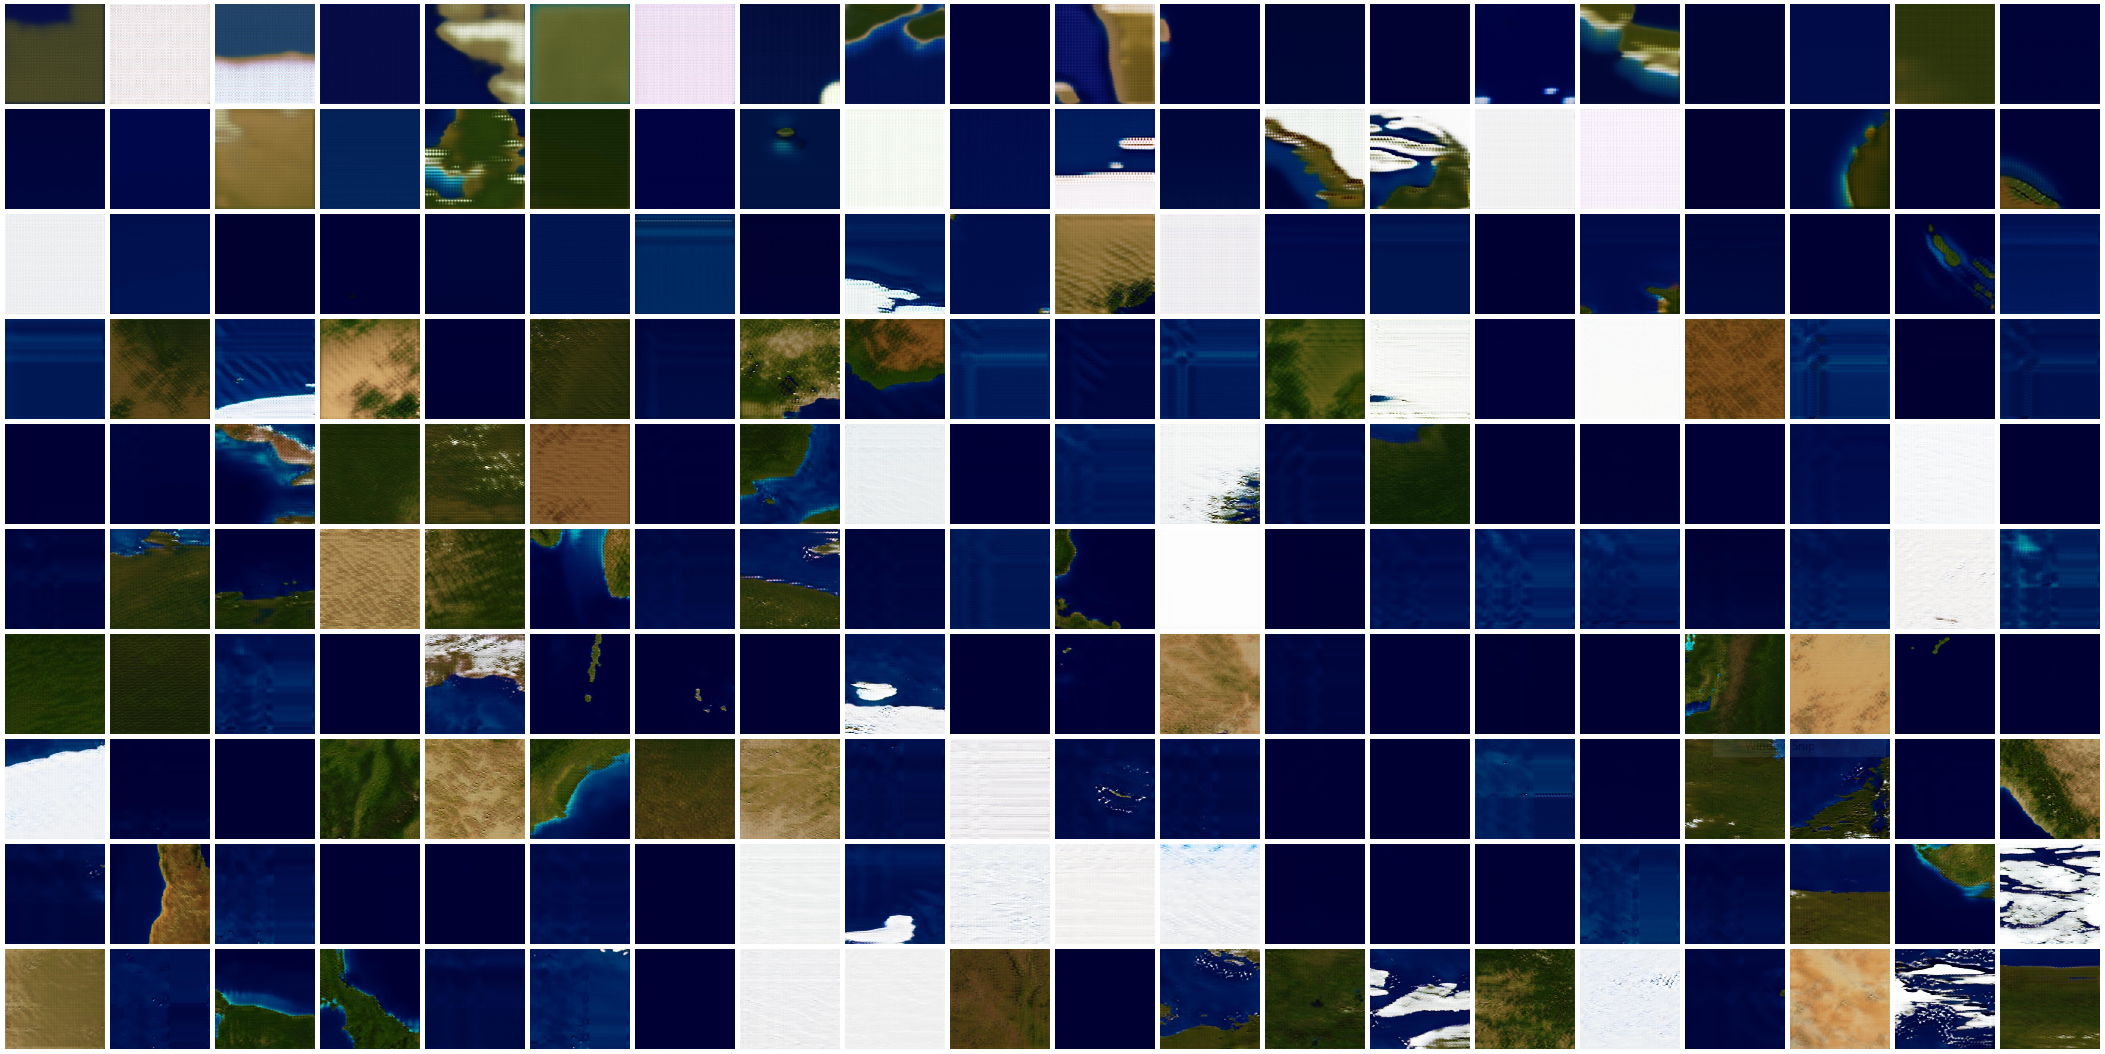 Sample results demonstrating the training process of  Terra Mars  generation 65, with each tile representing the quality of the generated images during one of the 200 epochs of training. In the beginning, the generated images didn't look like Earth at all. But after training with thousands of data examples for hundreds of times, the generator had acquired a good knowledge of Earth geography and was able to create realistic images. A successful neural network model is the result of lengthy iteration of architecture refactoring, data wrangling, hyperparameter tweaking, and model retraining.